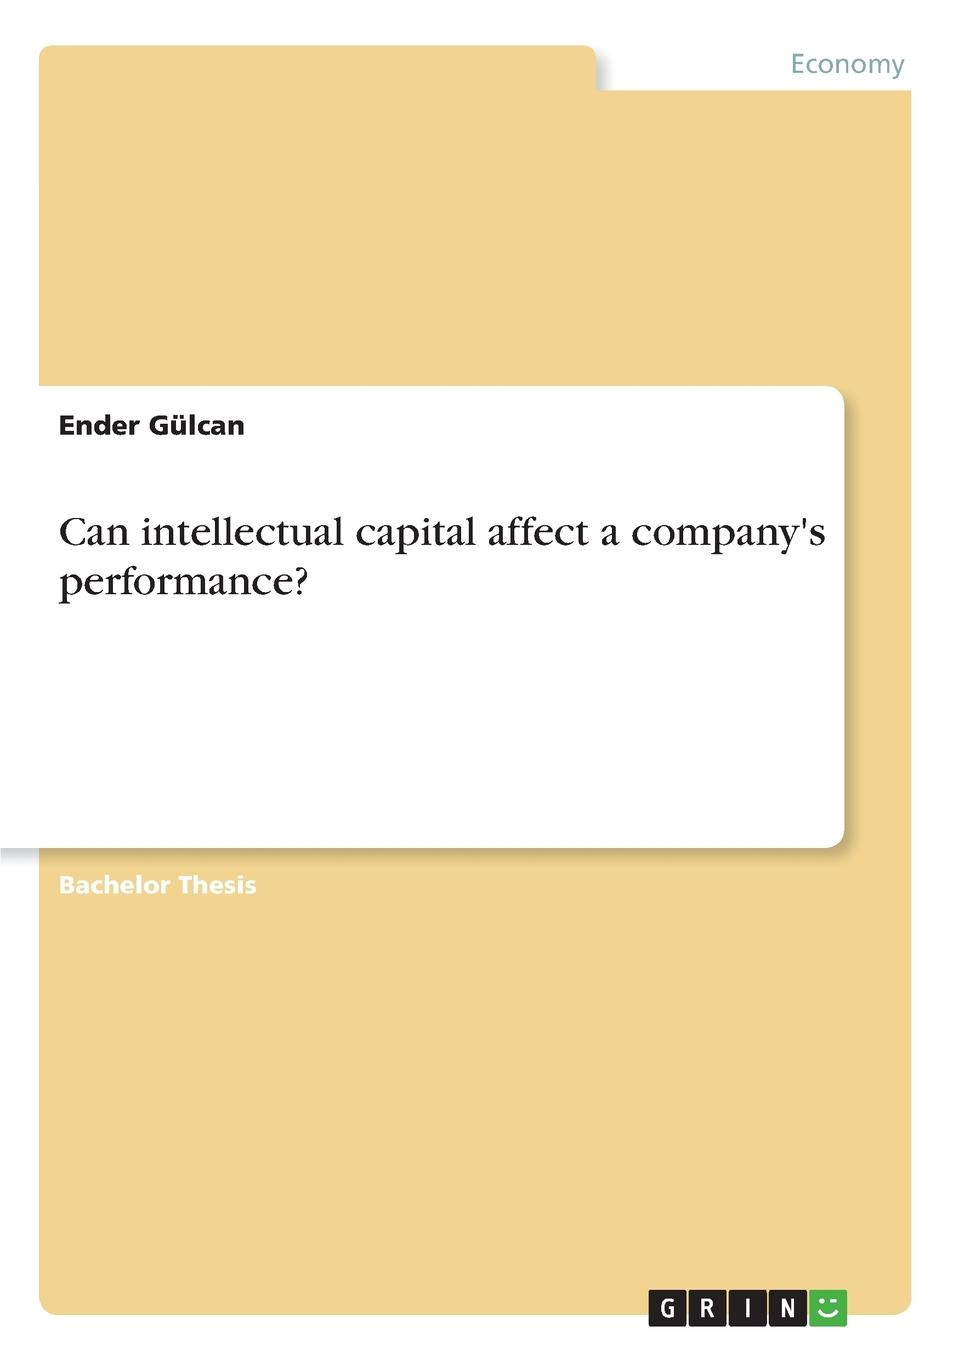 Ender Gülcan Can intellectual capital affect a company.s performance. jessica james fx option performance an analysis of the value delivered by fx options since the start of the market